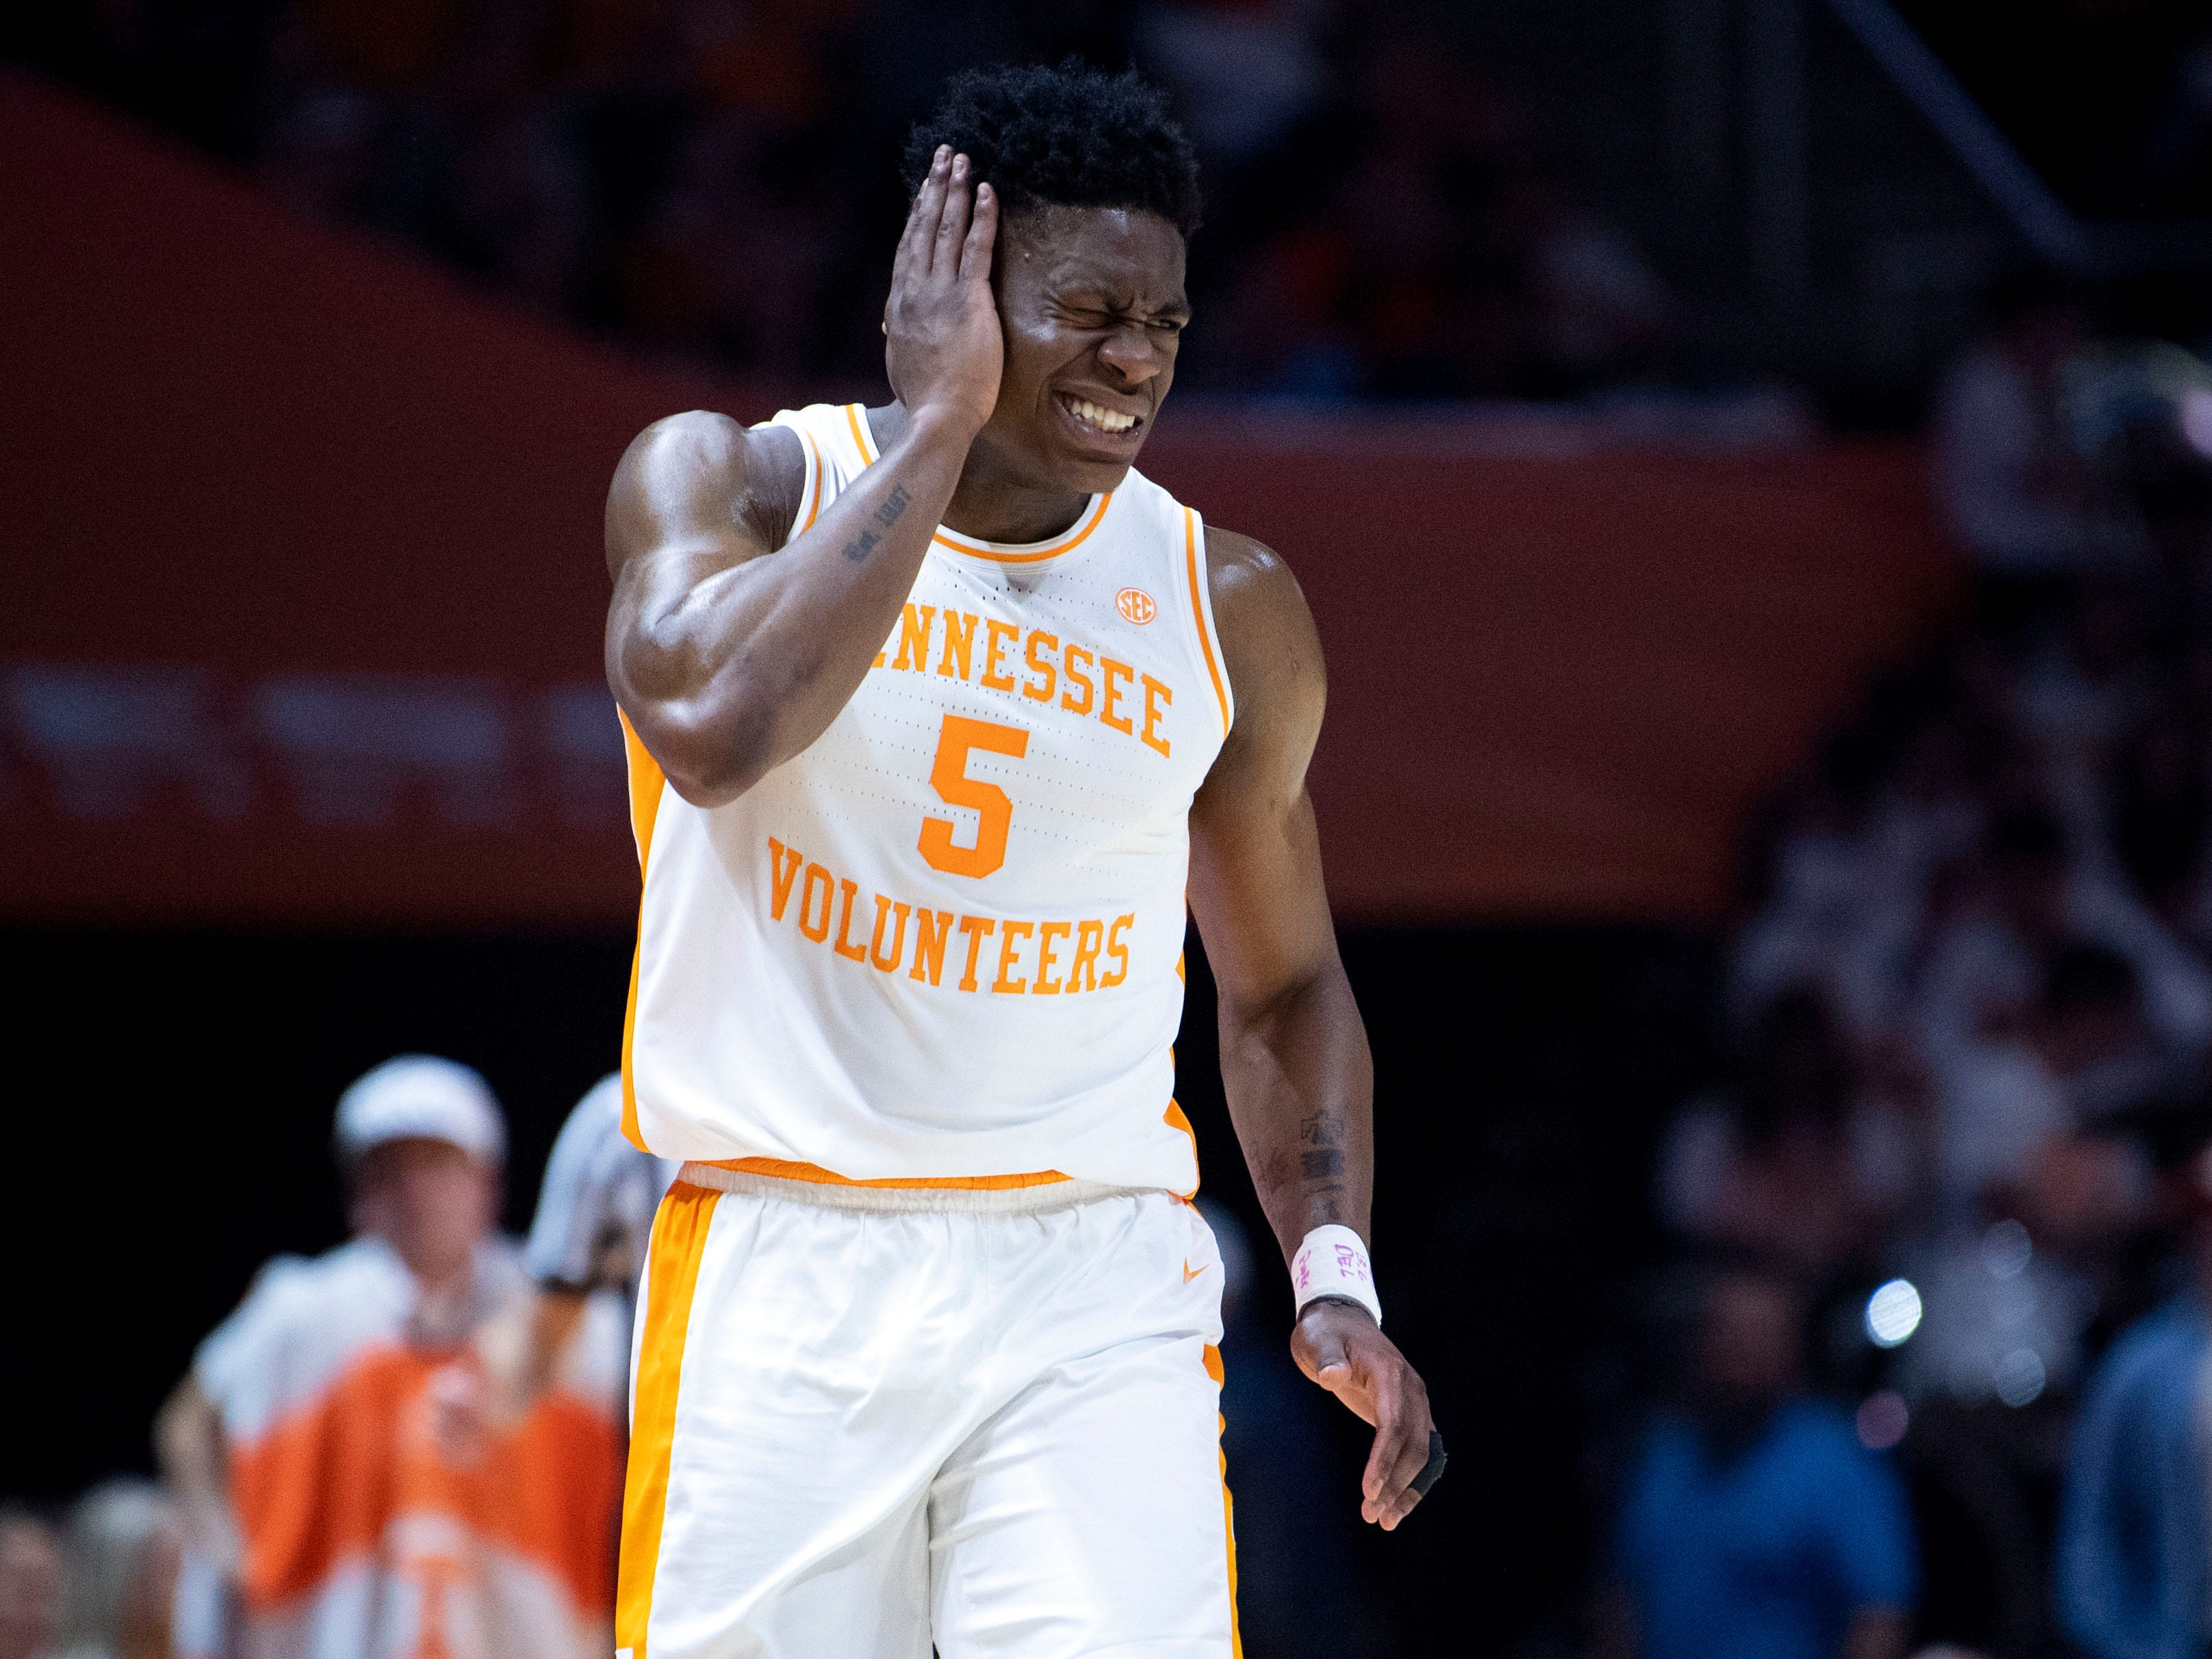 Tennessee's Admiral Schofield (5) covers his head in pain after getting hit during the game against Vanderbilt on Tuesday, February 19, 2019.